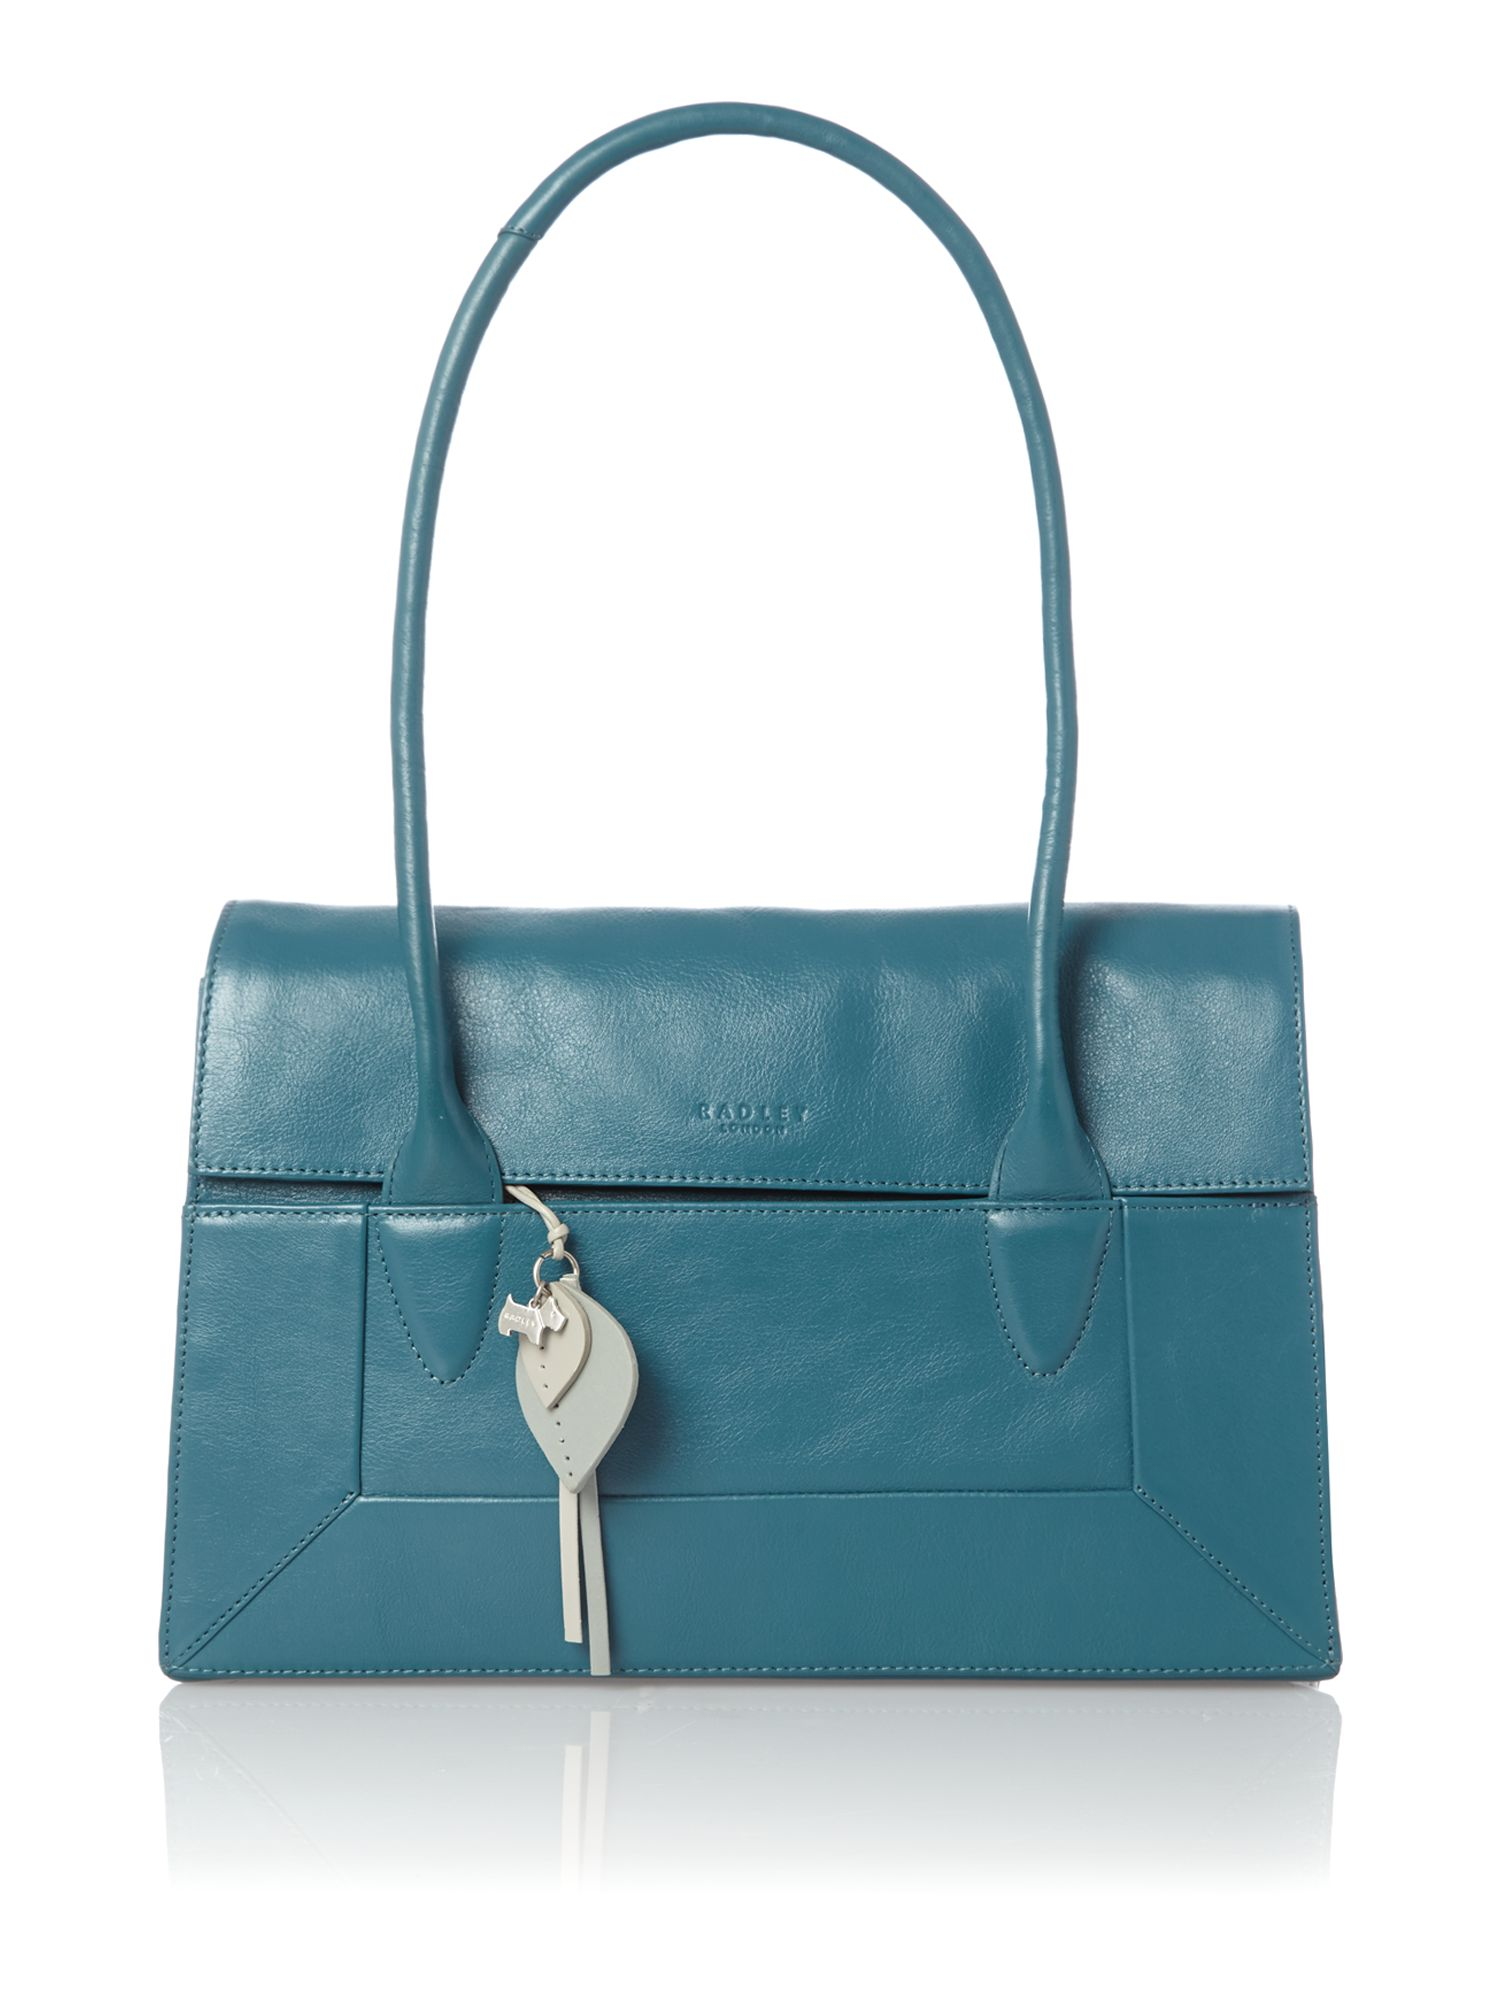 Border blue leather medium flapover tote bag